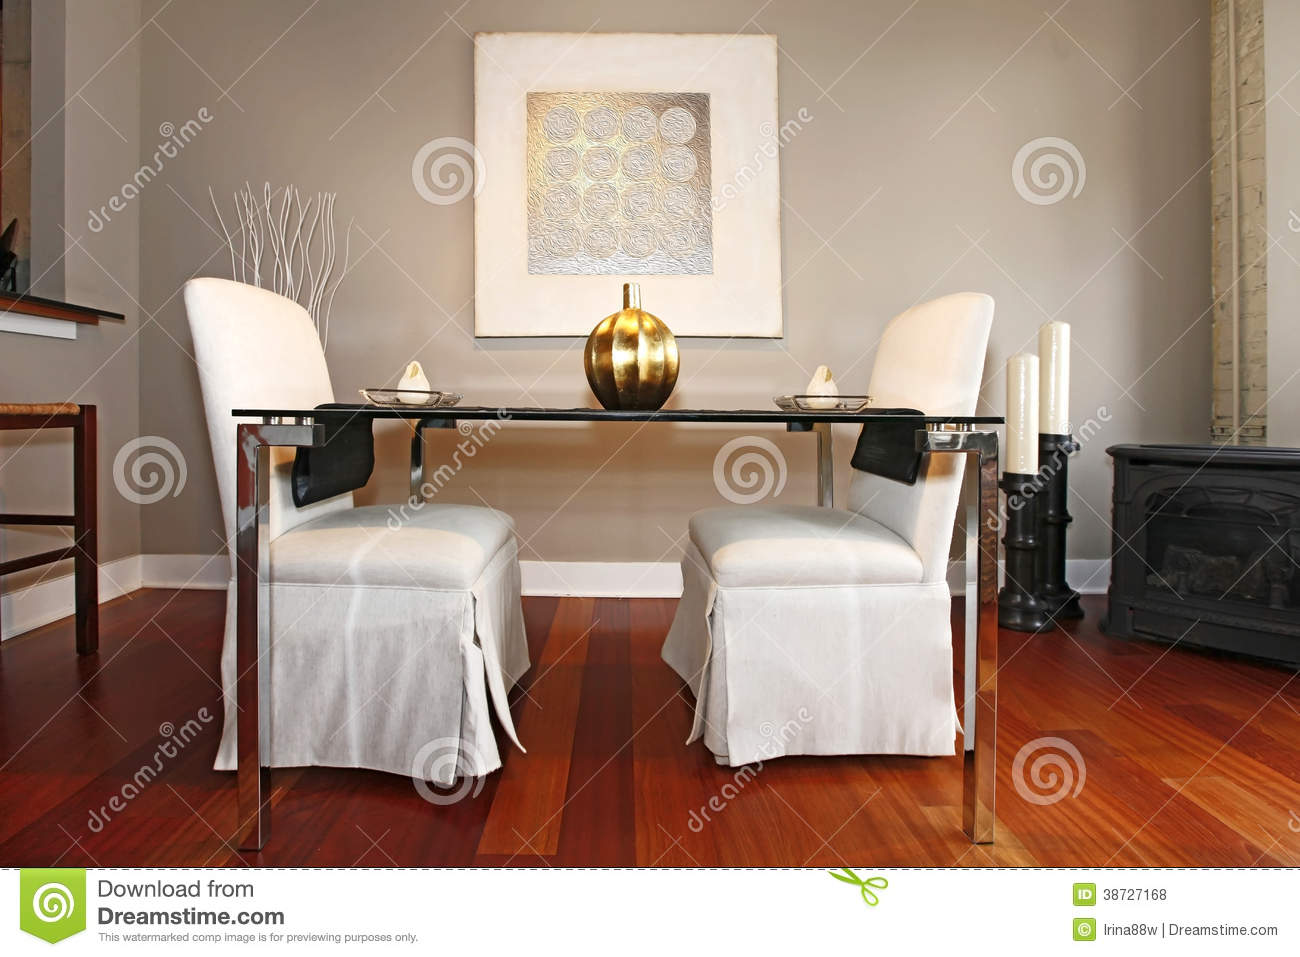 Elegant Glass Table With White Luxury Chairs In Modern Reconstructed